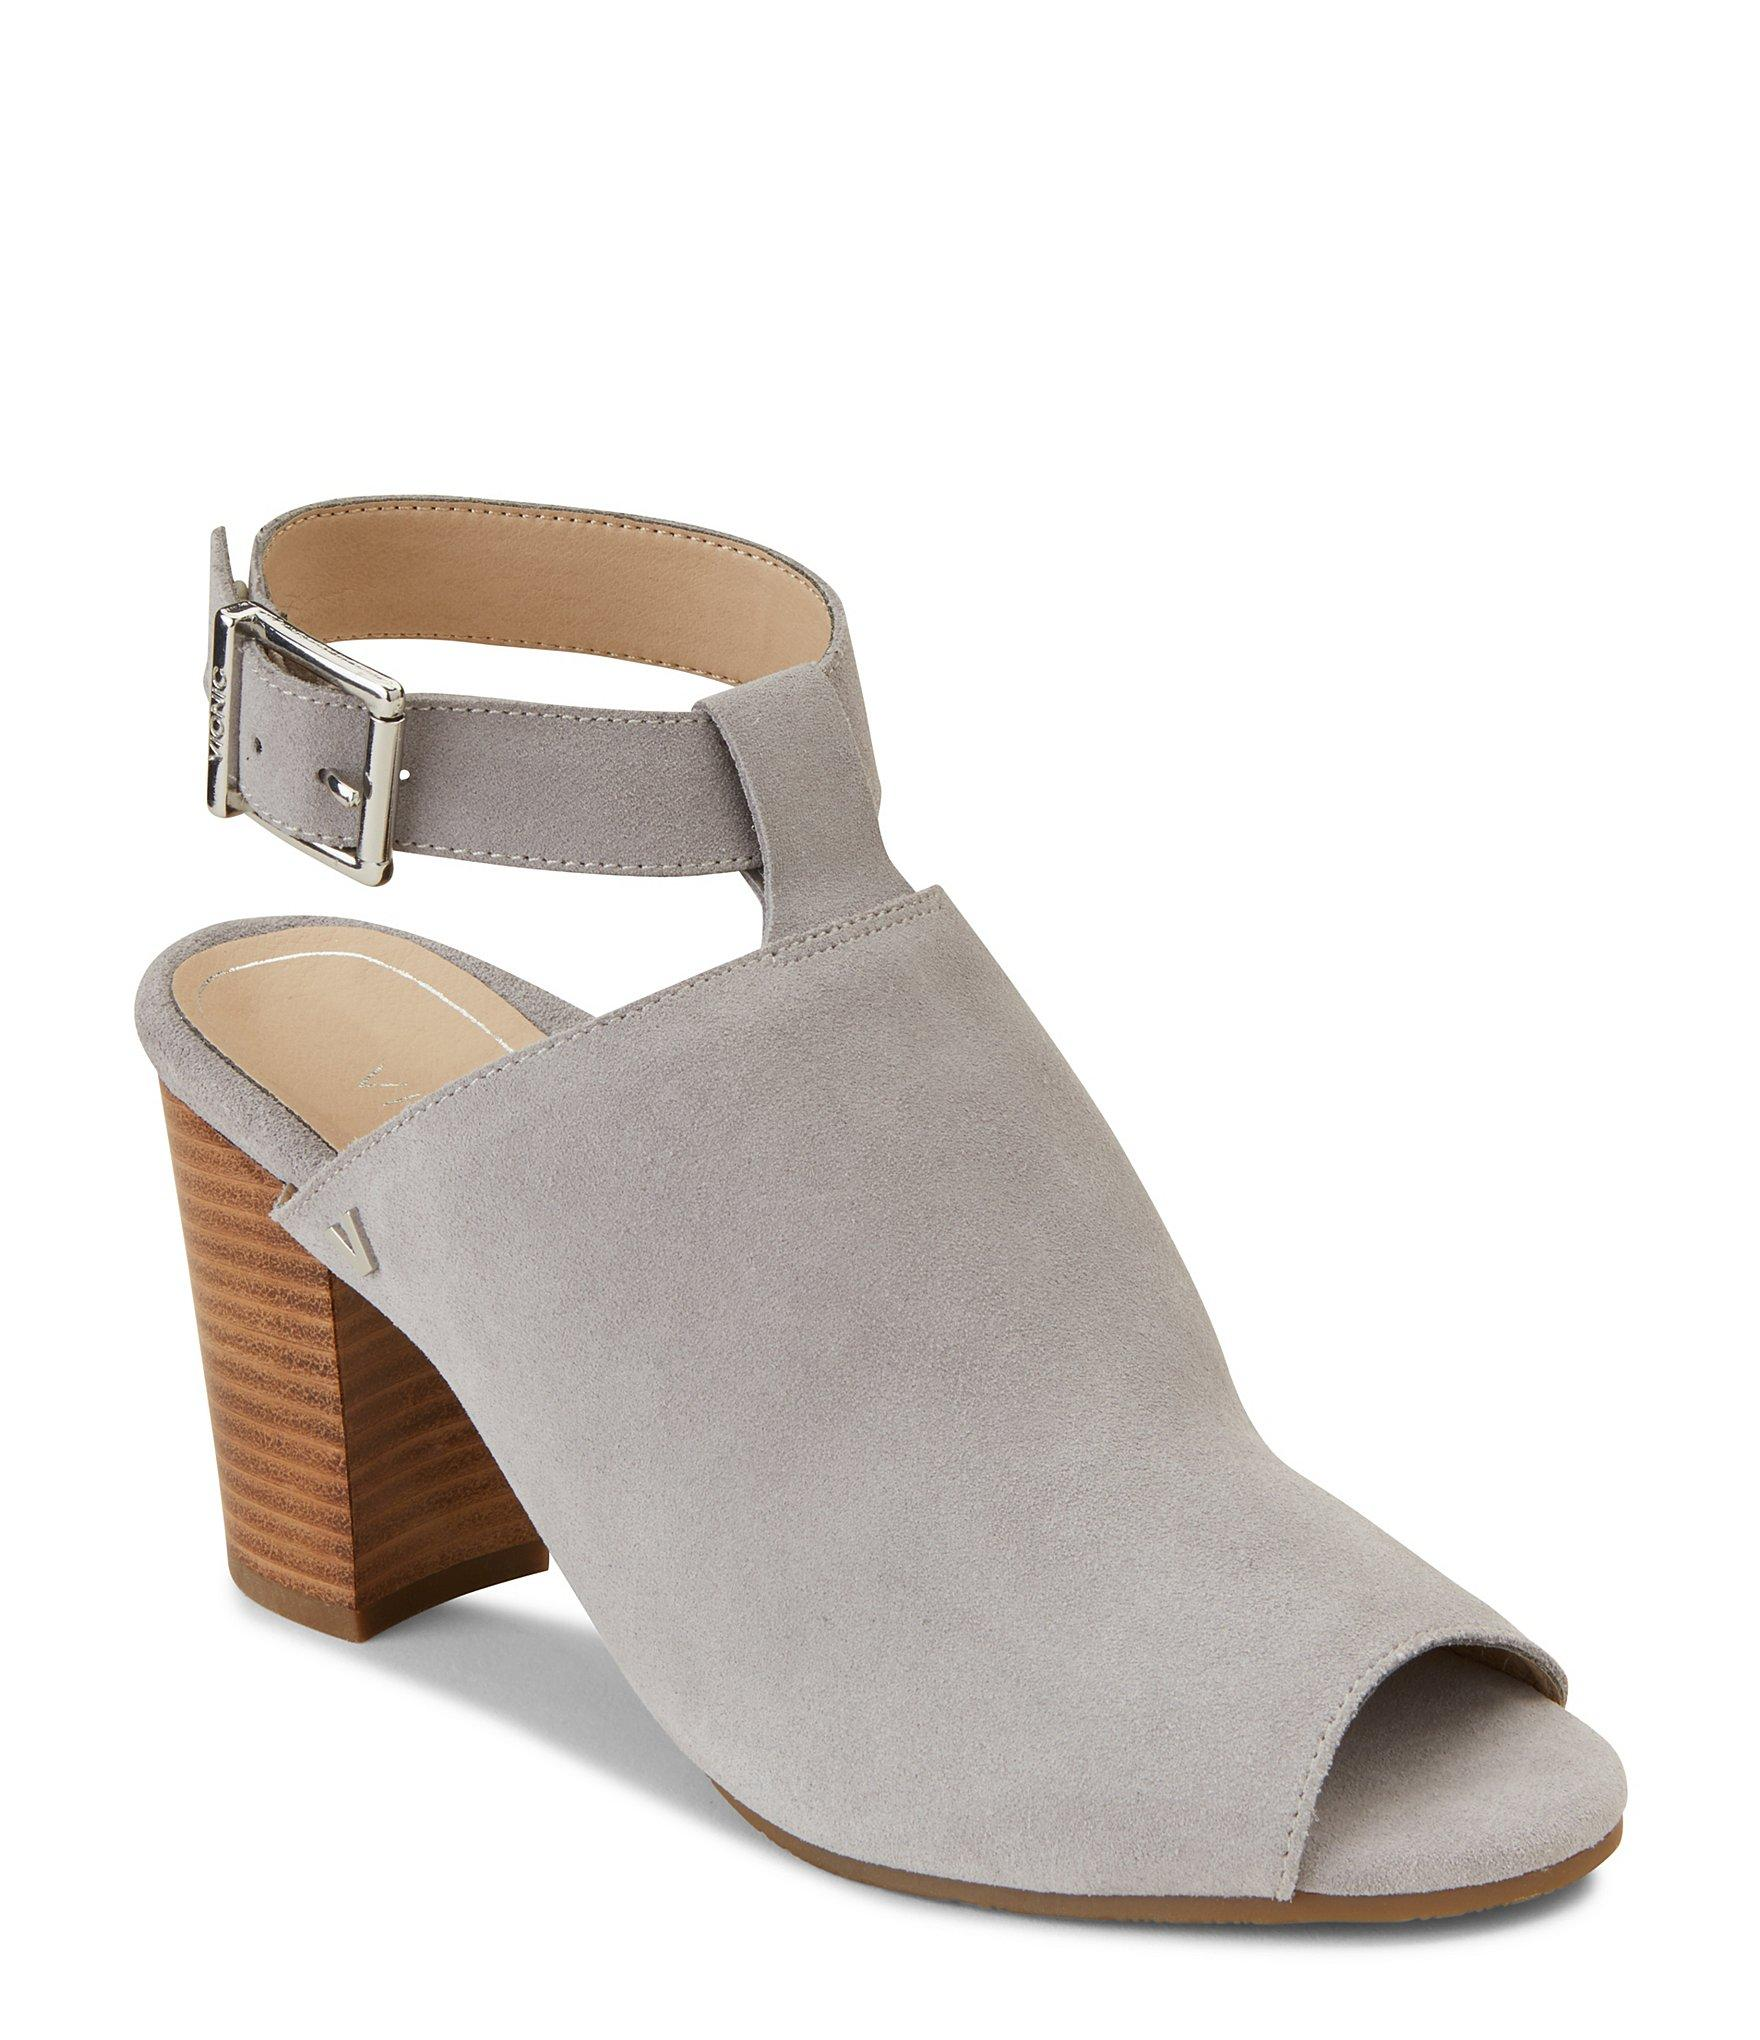 59e81ab0b84 Lyst - Vionic Kaia Suede Ankle Strap Block Heel Mules in Gray